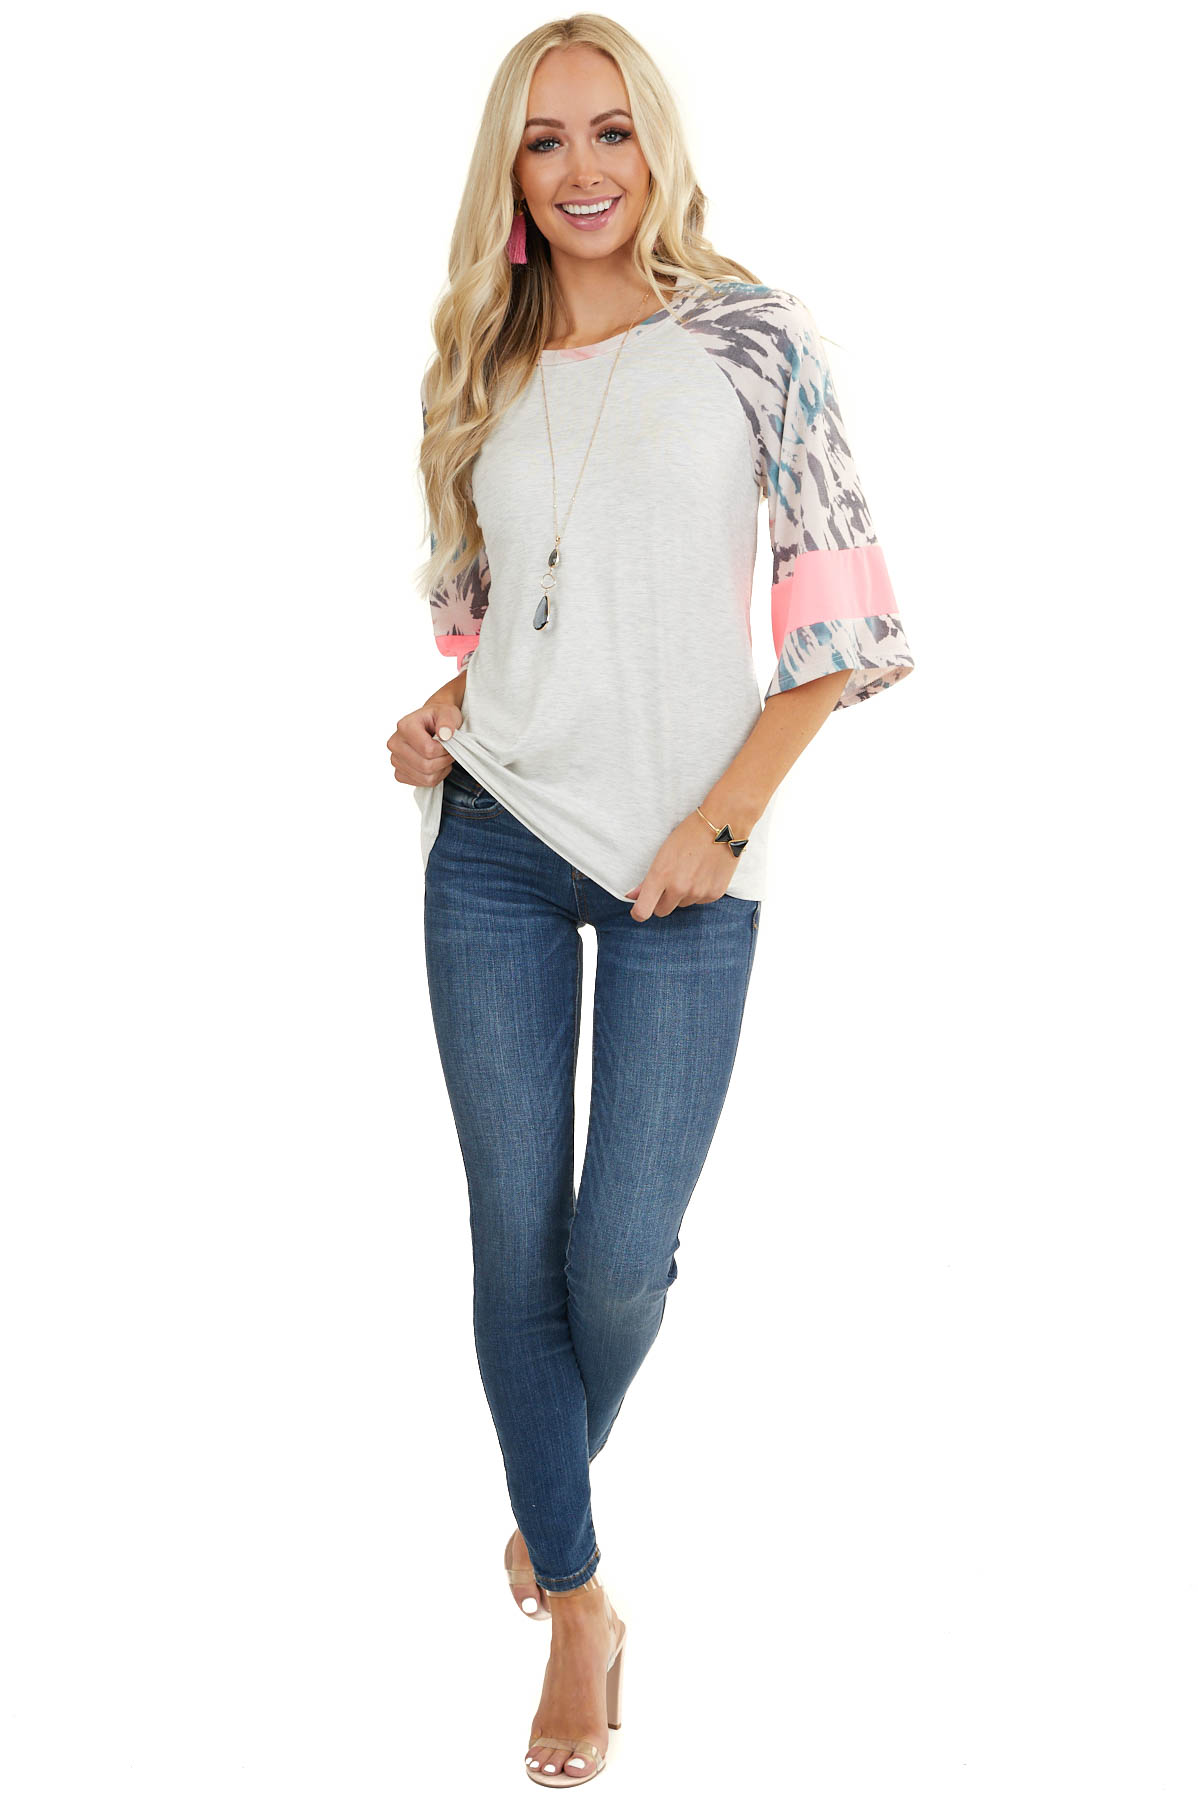 Dove Grey Top with 3/4 Sleeves with Tie Dye and Colorblock